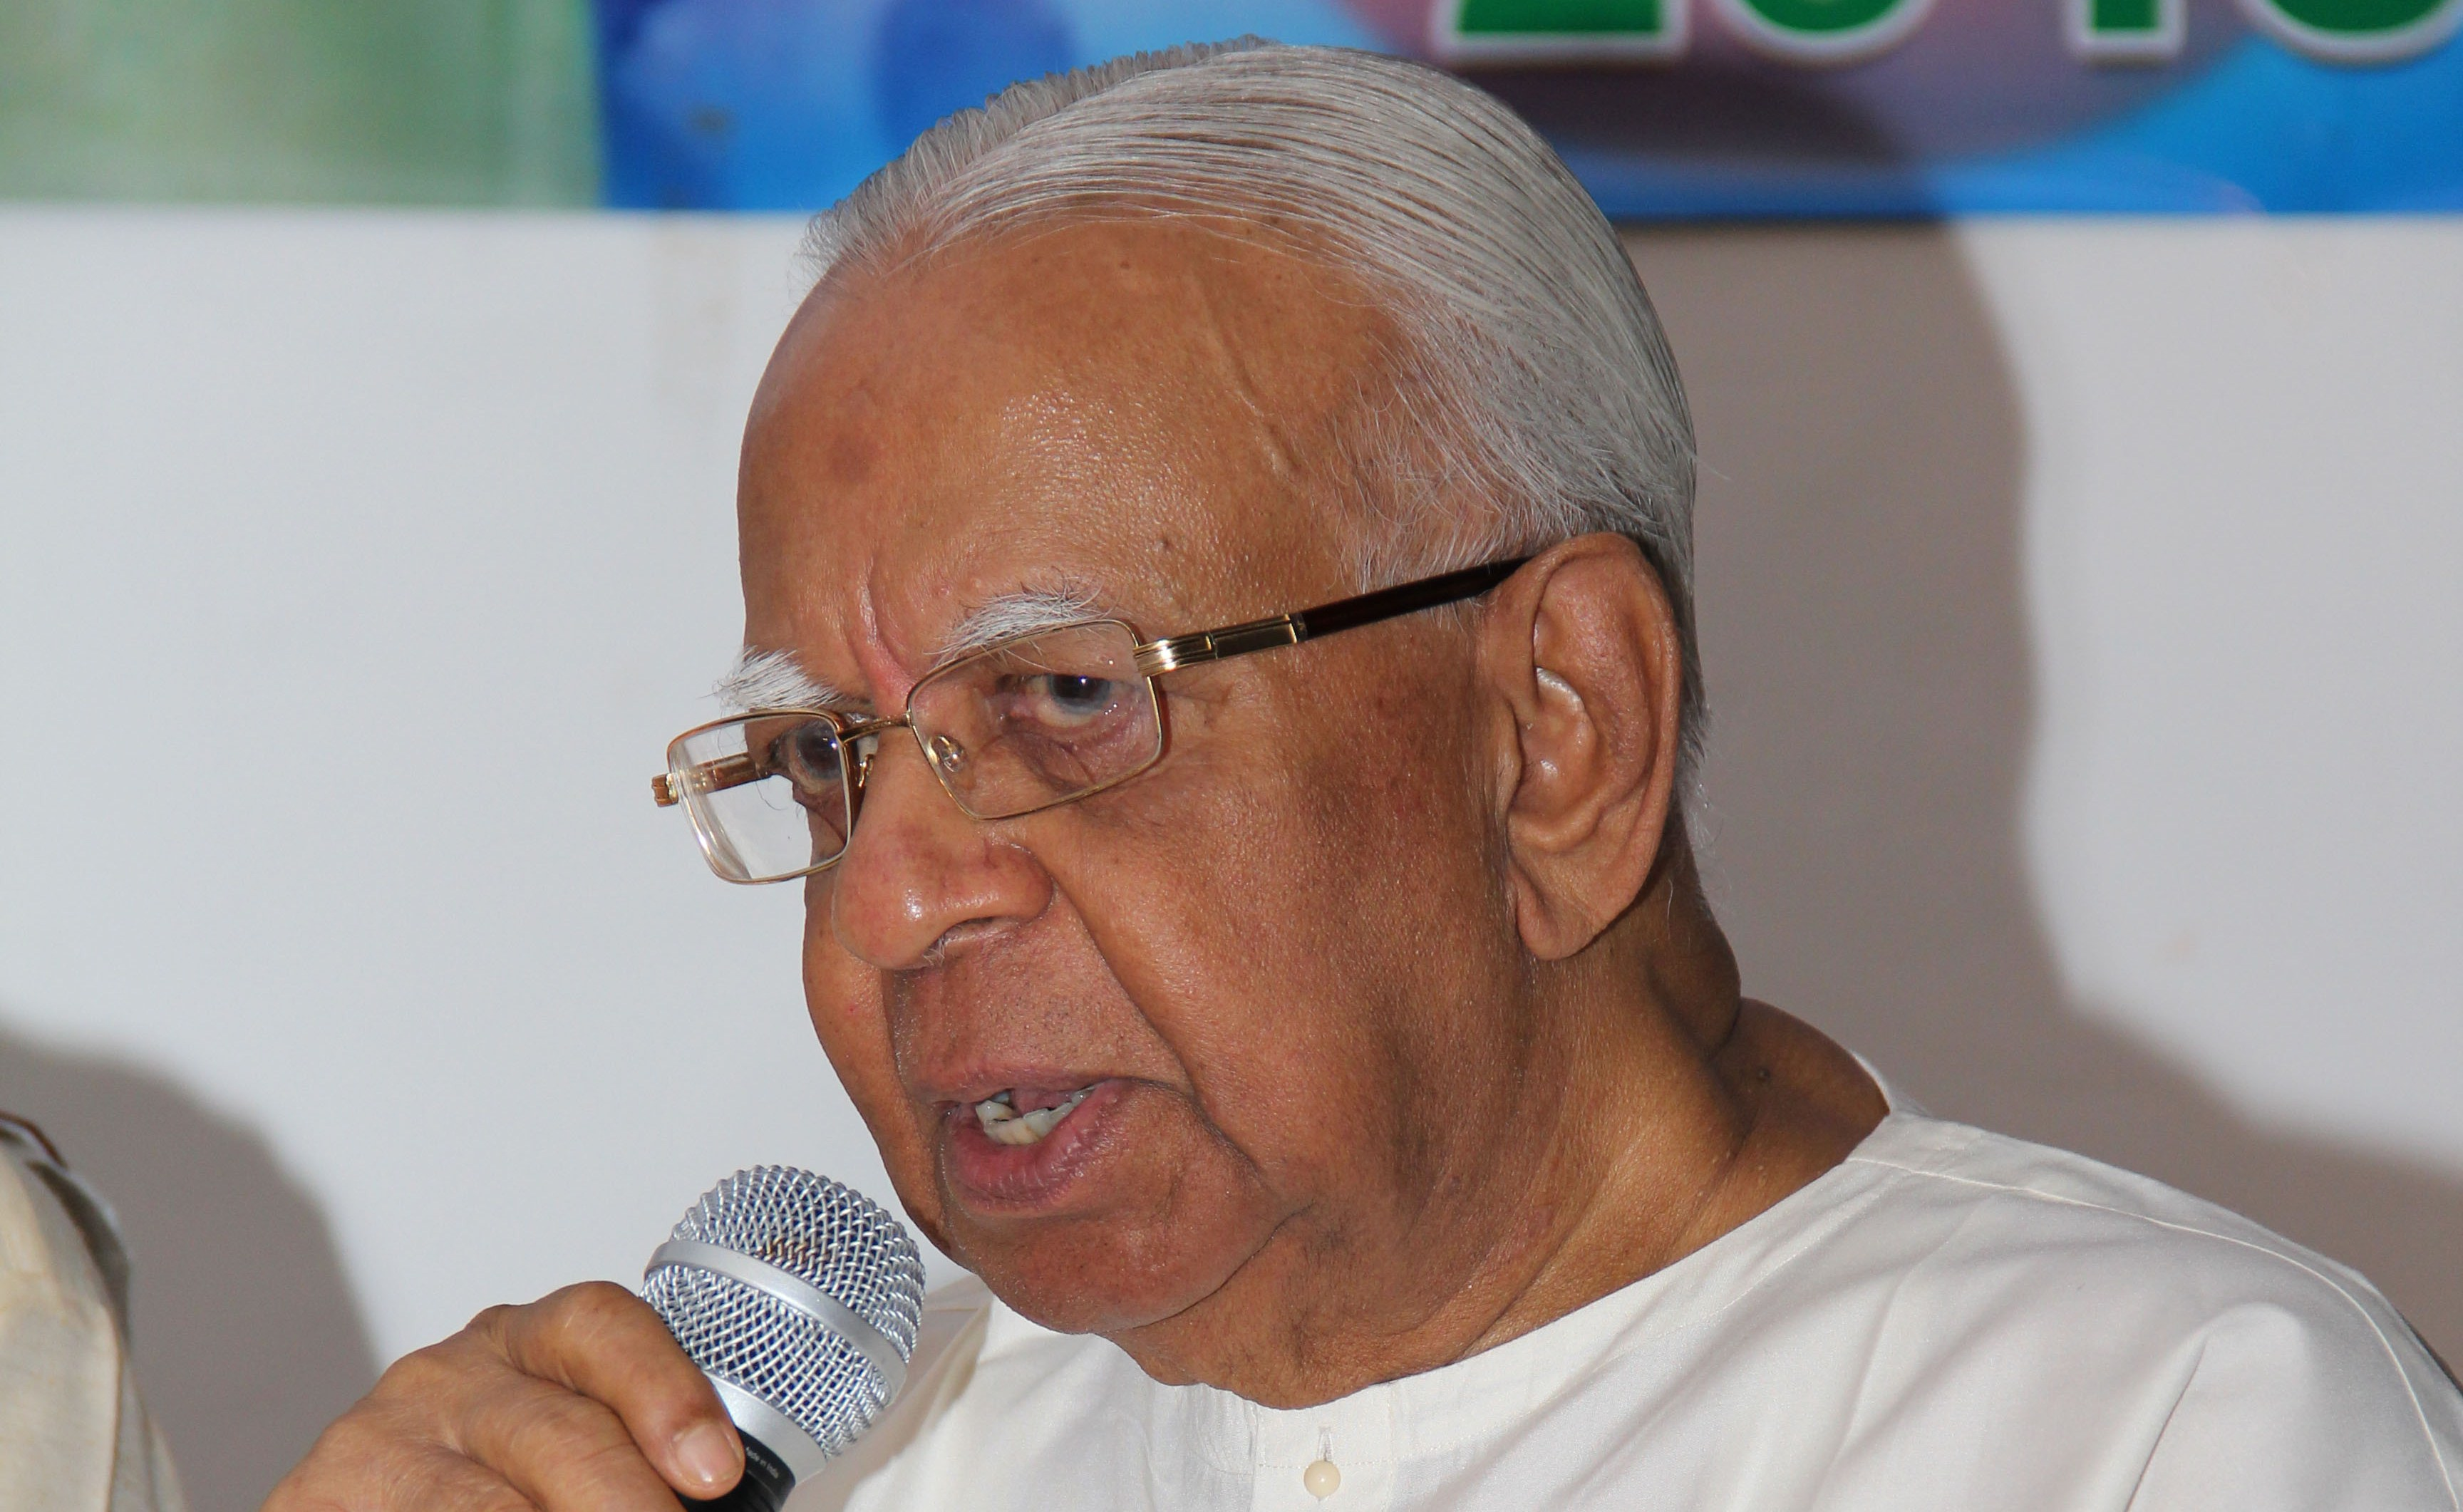 Mahindha out to mischief to grab the power, rebukes Sampanthan